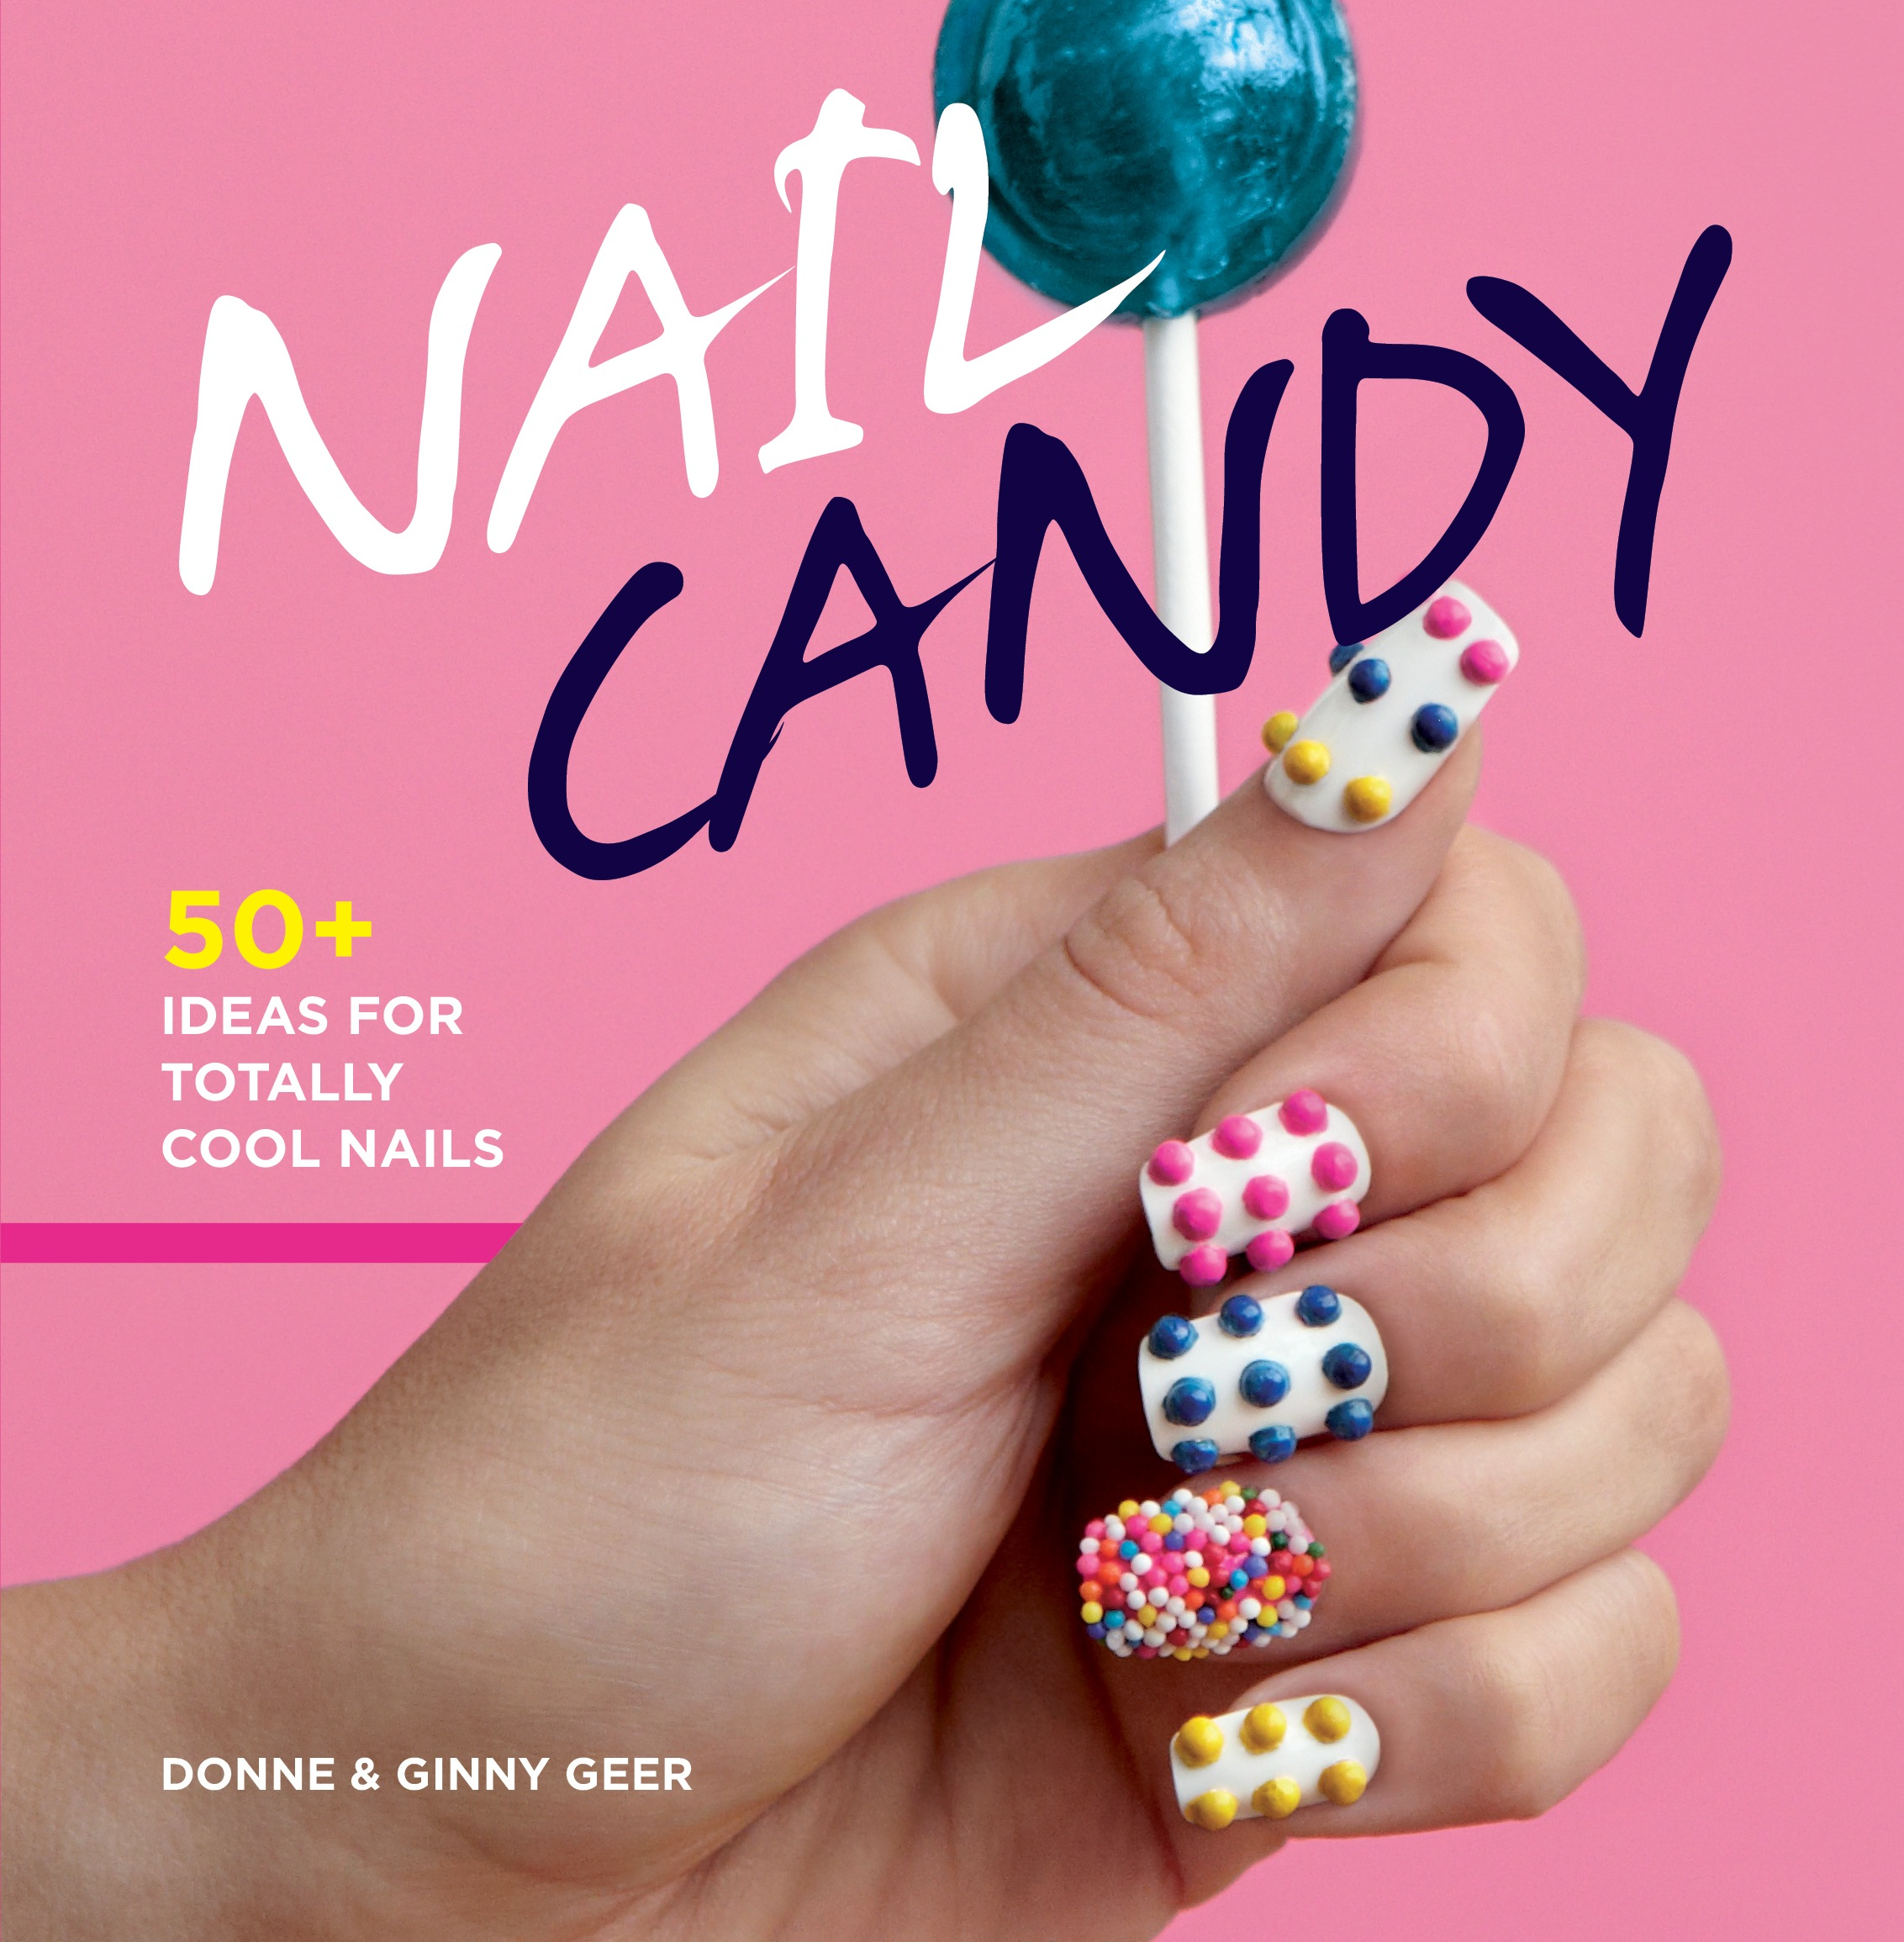 Nail Candy Book By Donne And Ginny Geer Official Publisher Page